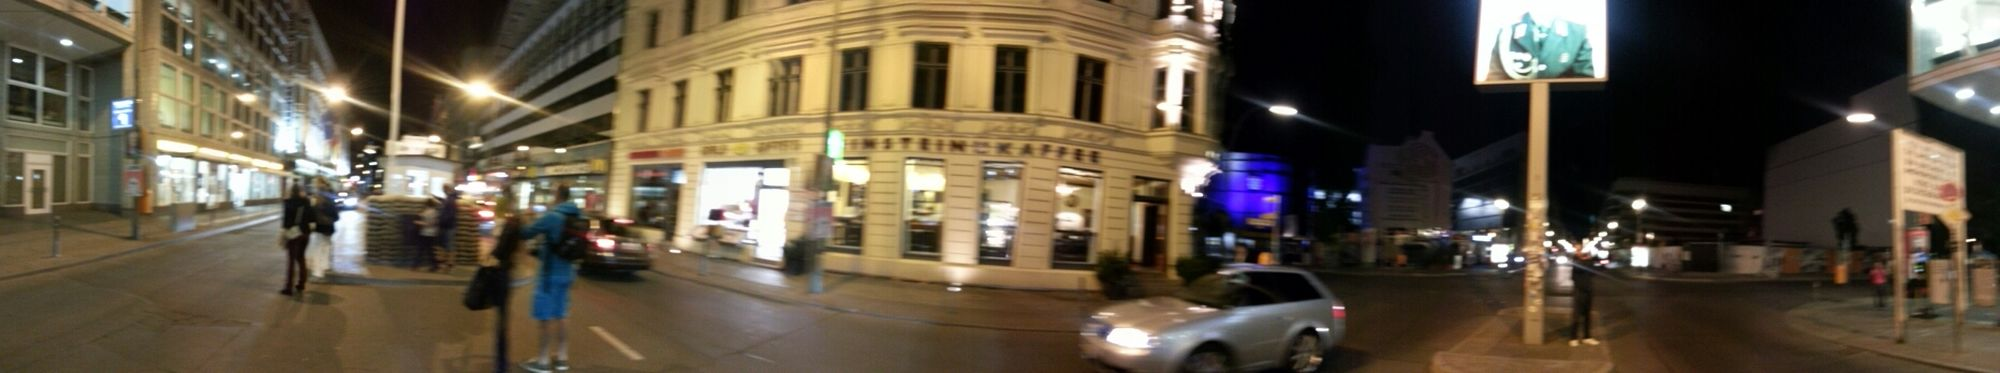 Checkpointcharlie From Where I Stand Night Lights Change Your Perspective